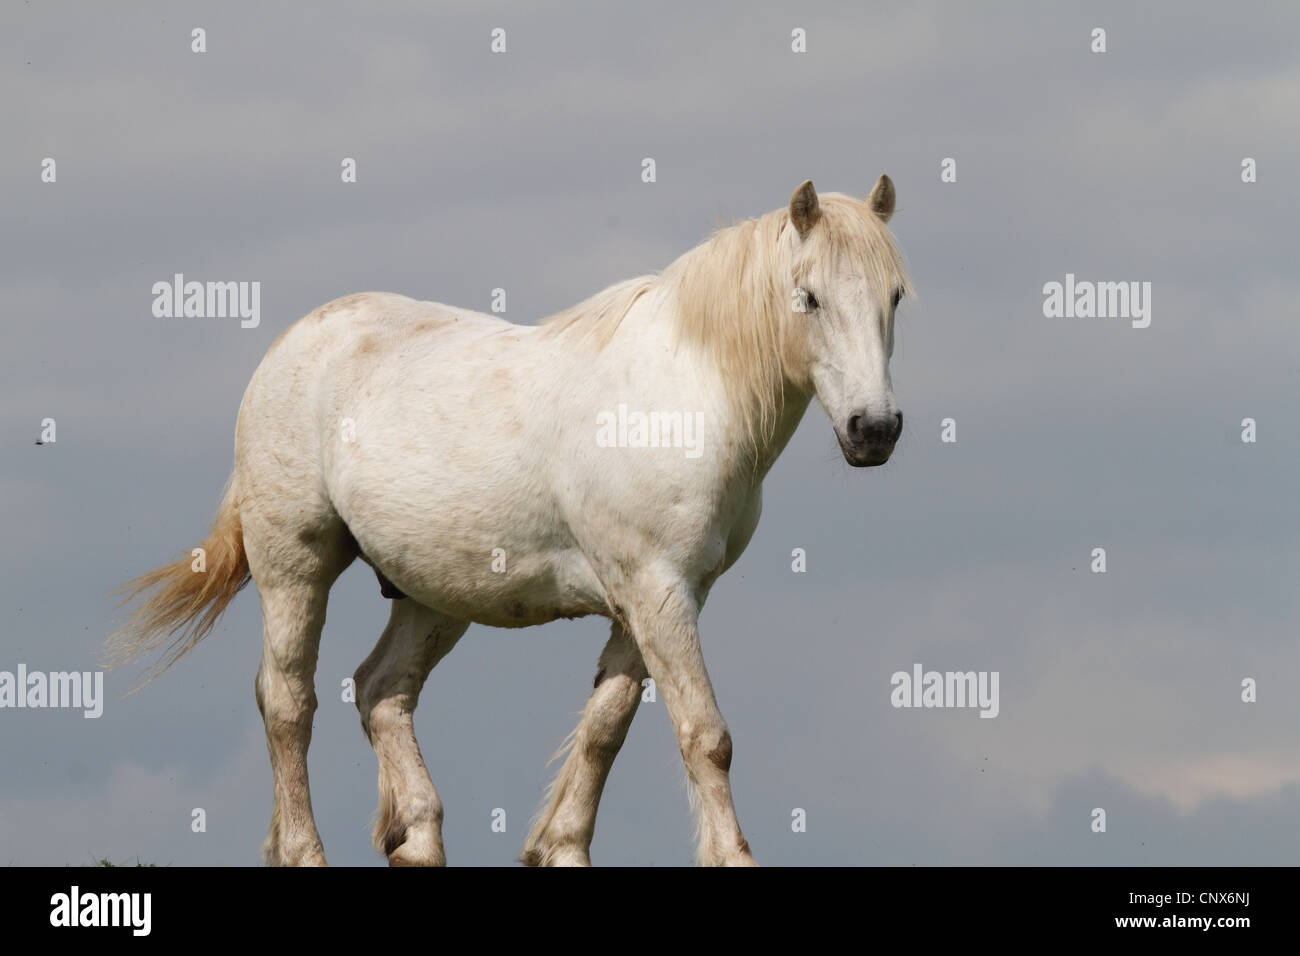 white horse on grass with blue sky - Stock Image